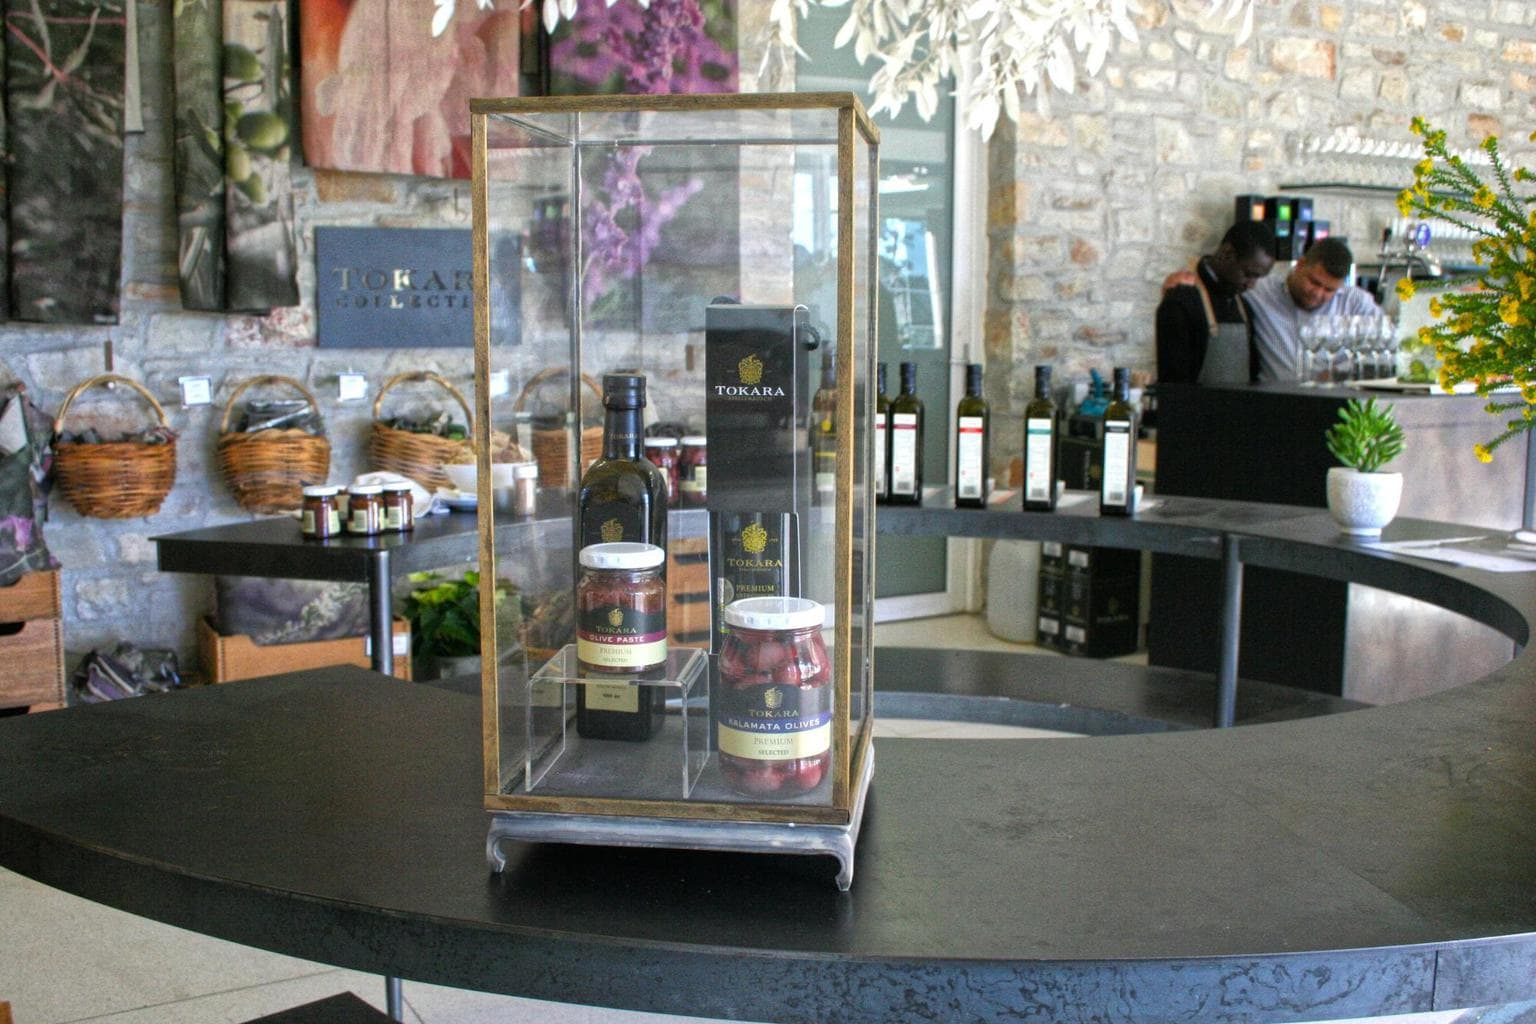 Olive oil at Tokara